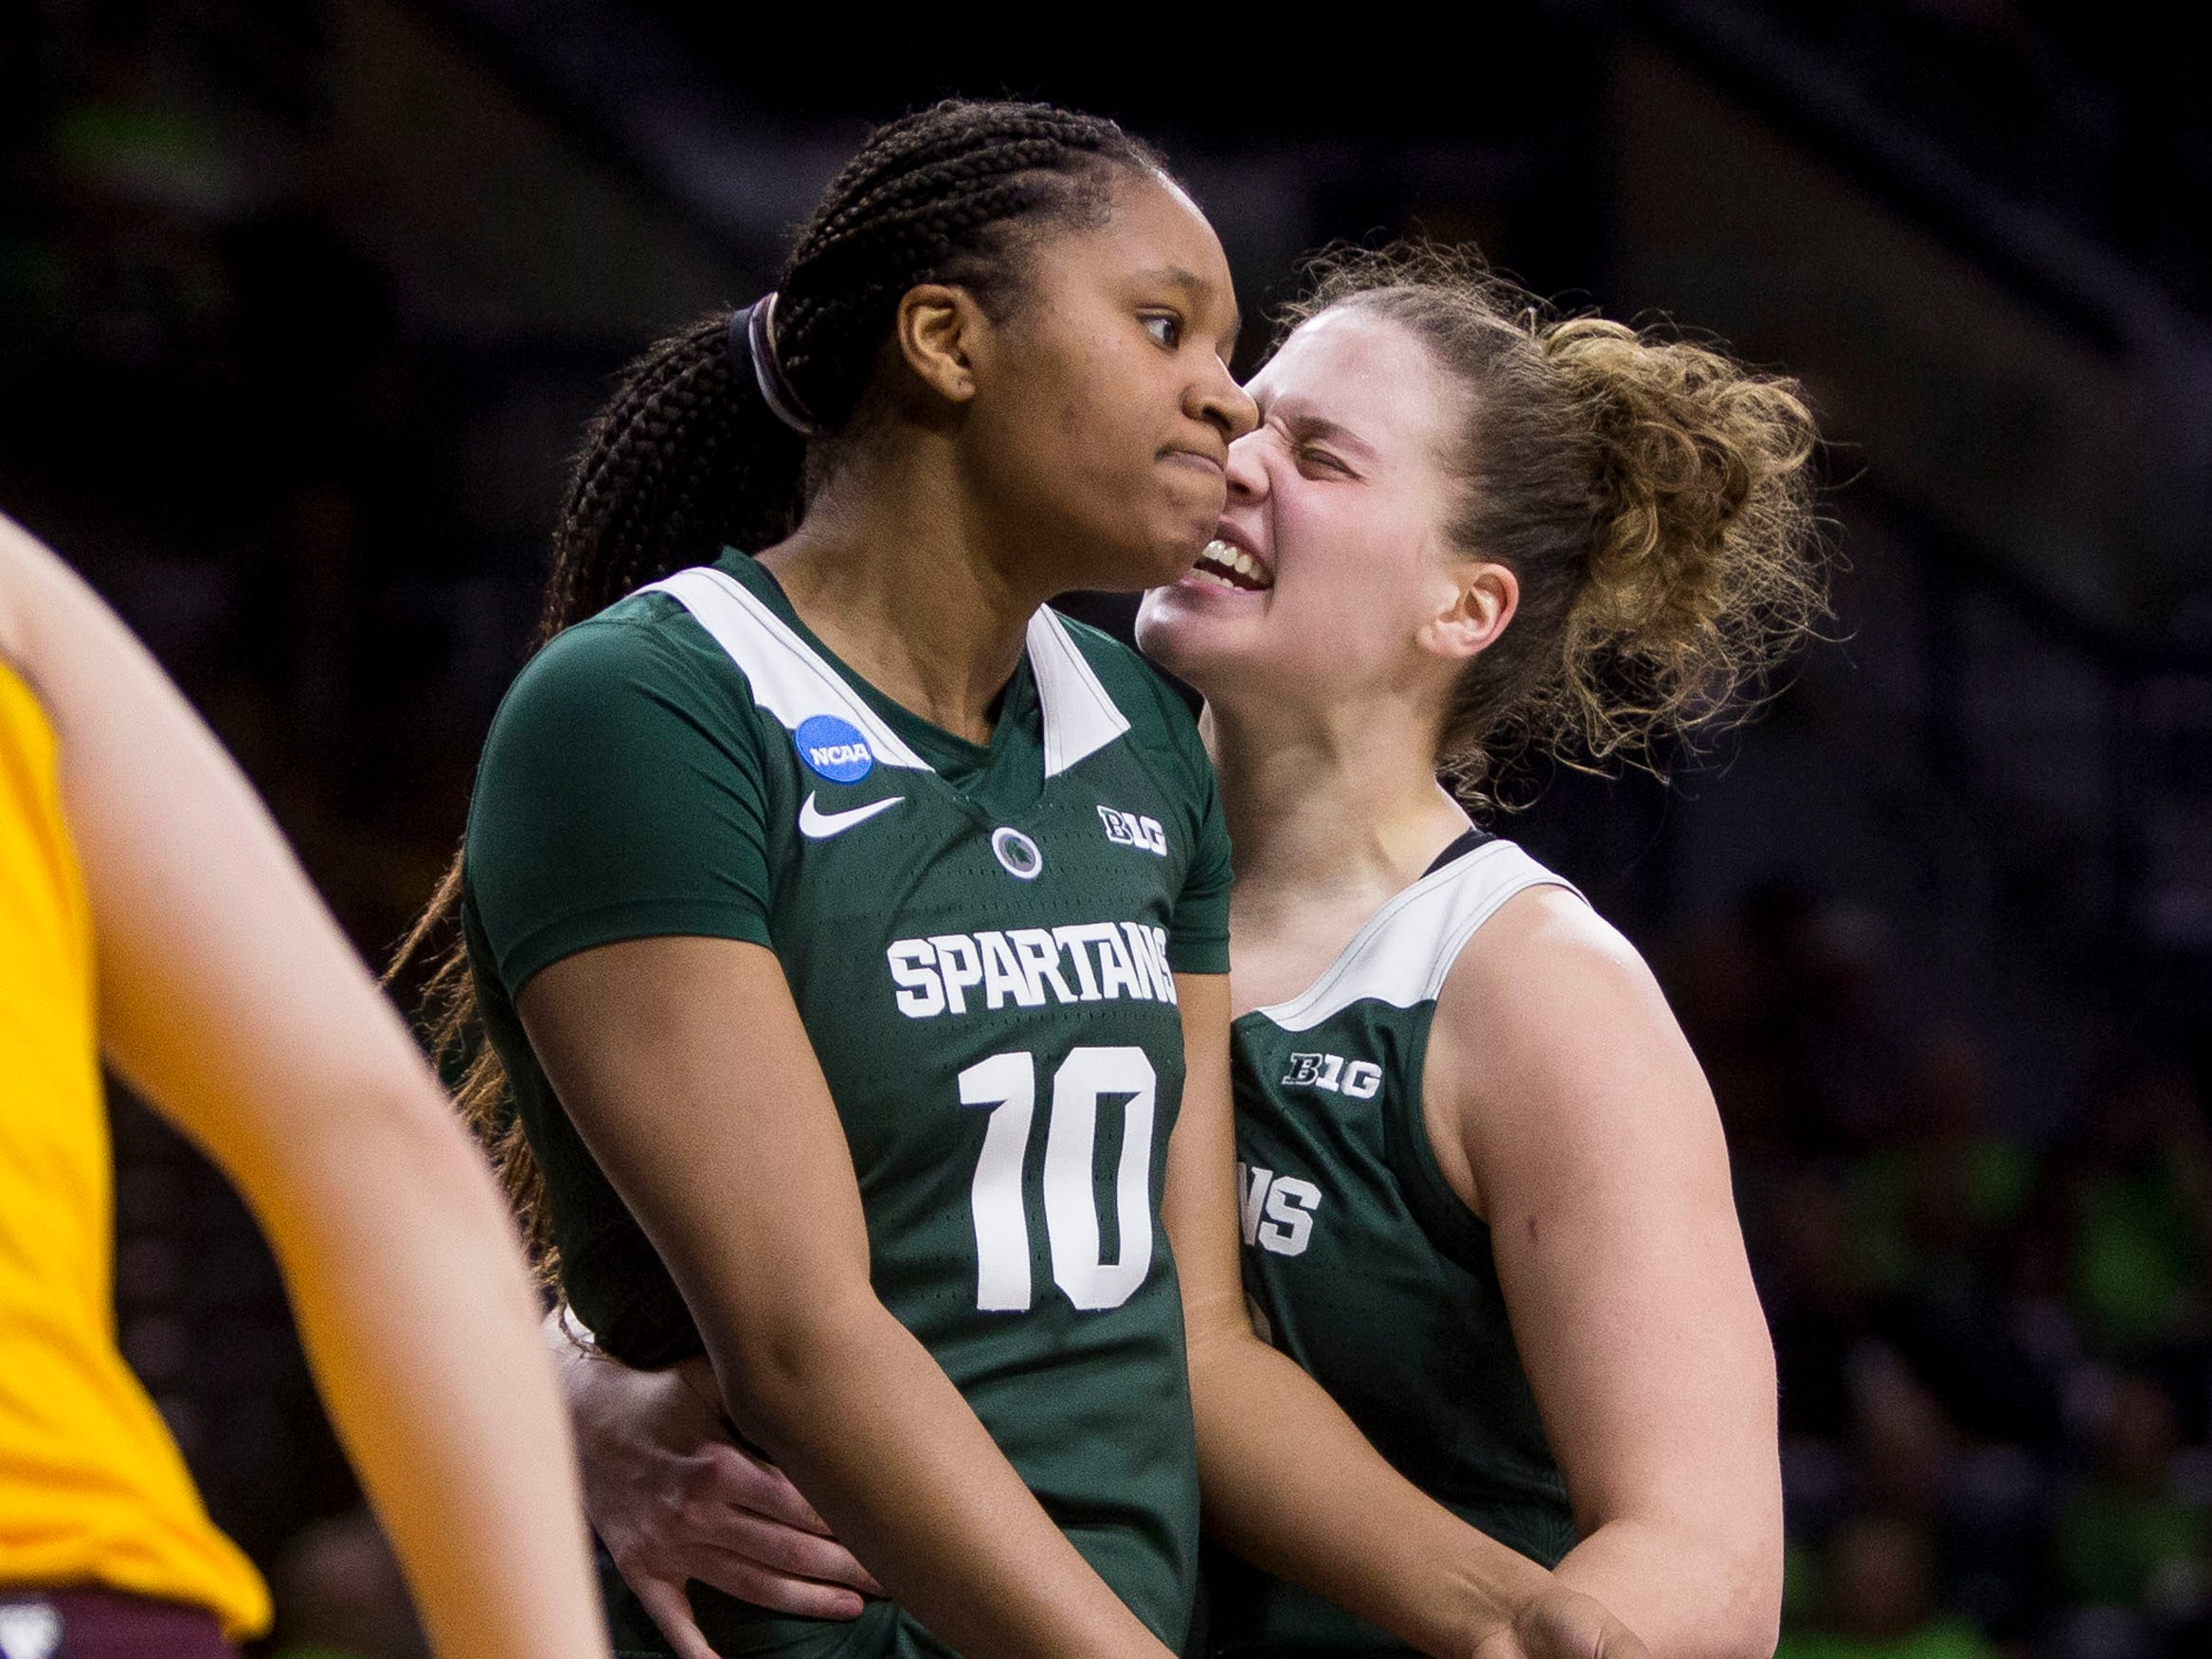 Michigan State's Sidney Cooks (10) and Jenna Allen celebrate next to Central Michigan's Maddy Watters (4) during a first-round game in the NCAA women's college basketball tournament in South Bend, Ind., Saturday, March 23, 2019. Michigan State won 88-87. (AP Photo/Robert Franklin)